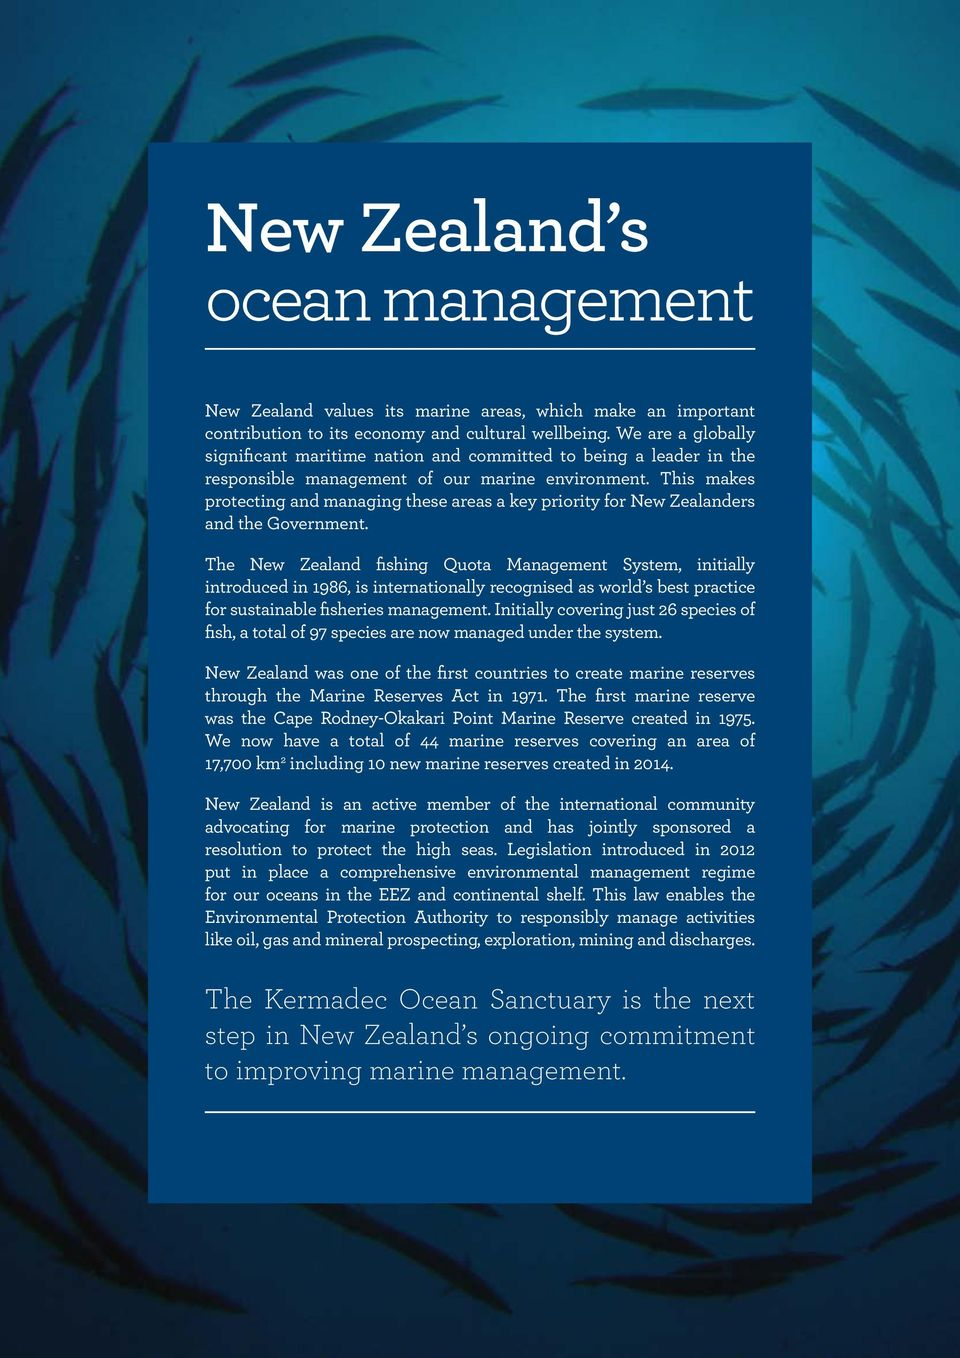 This makes protecting and managing these areas a key priority for New Zealanders and the Government.